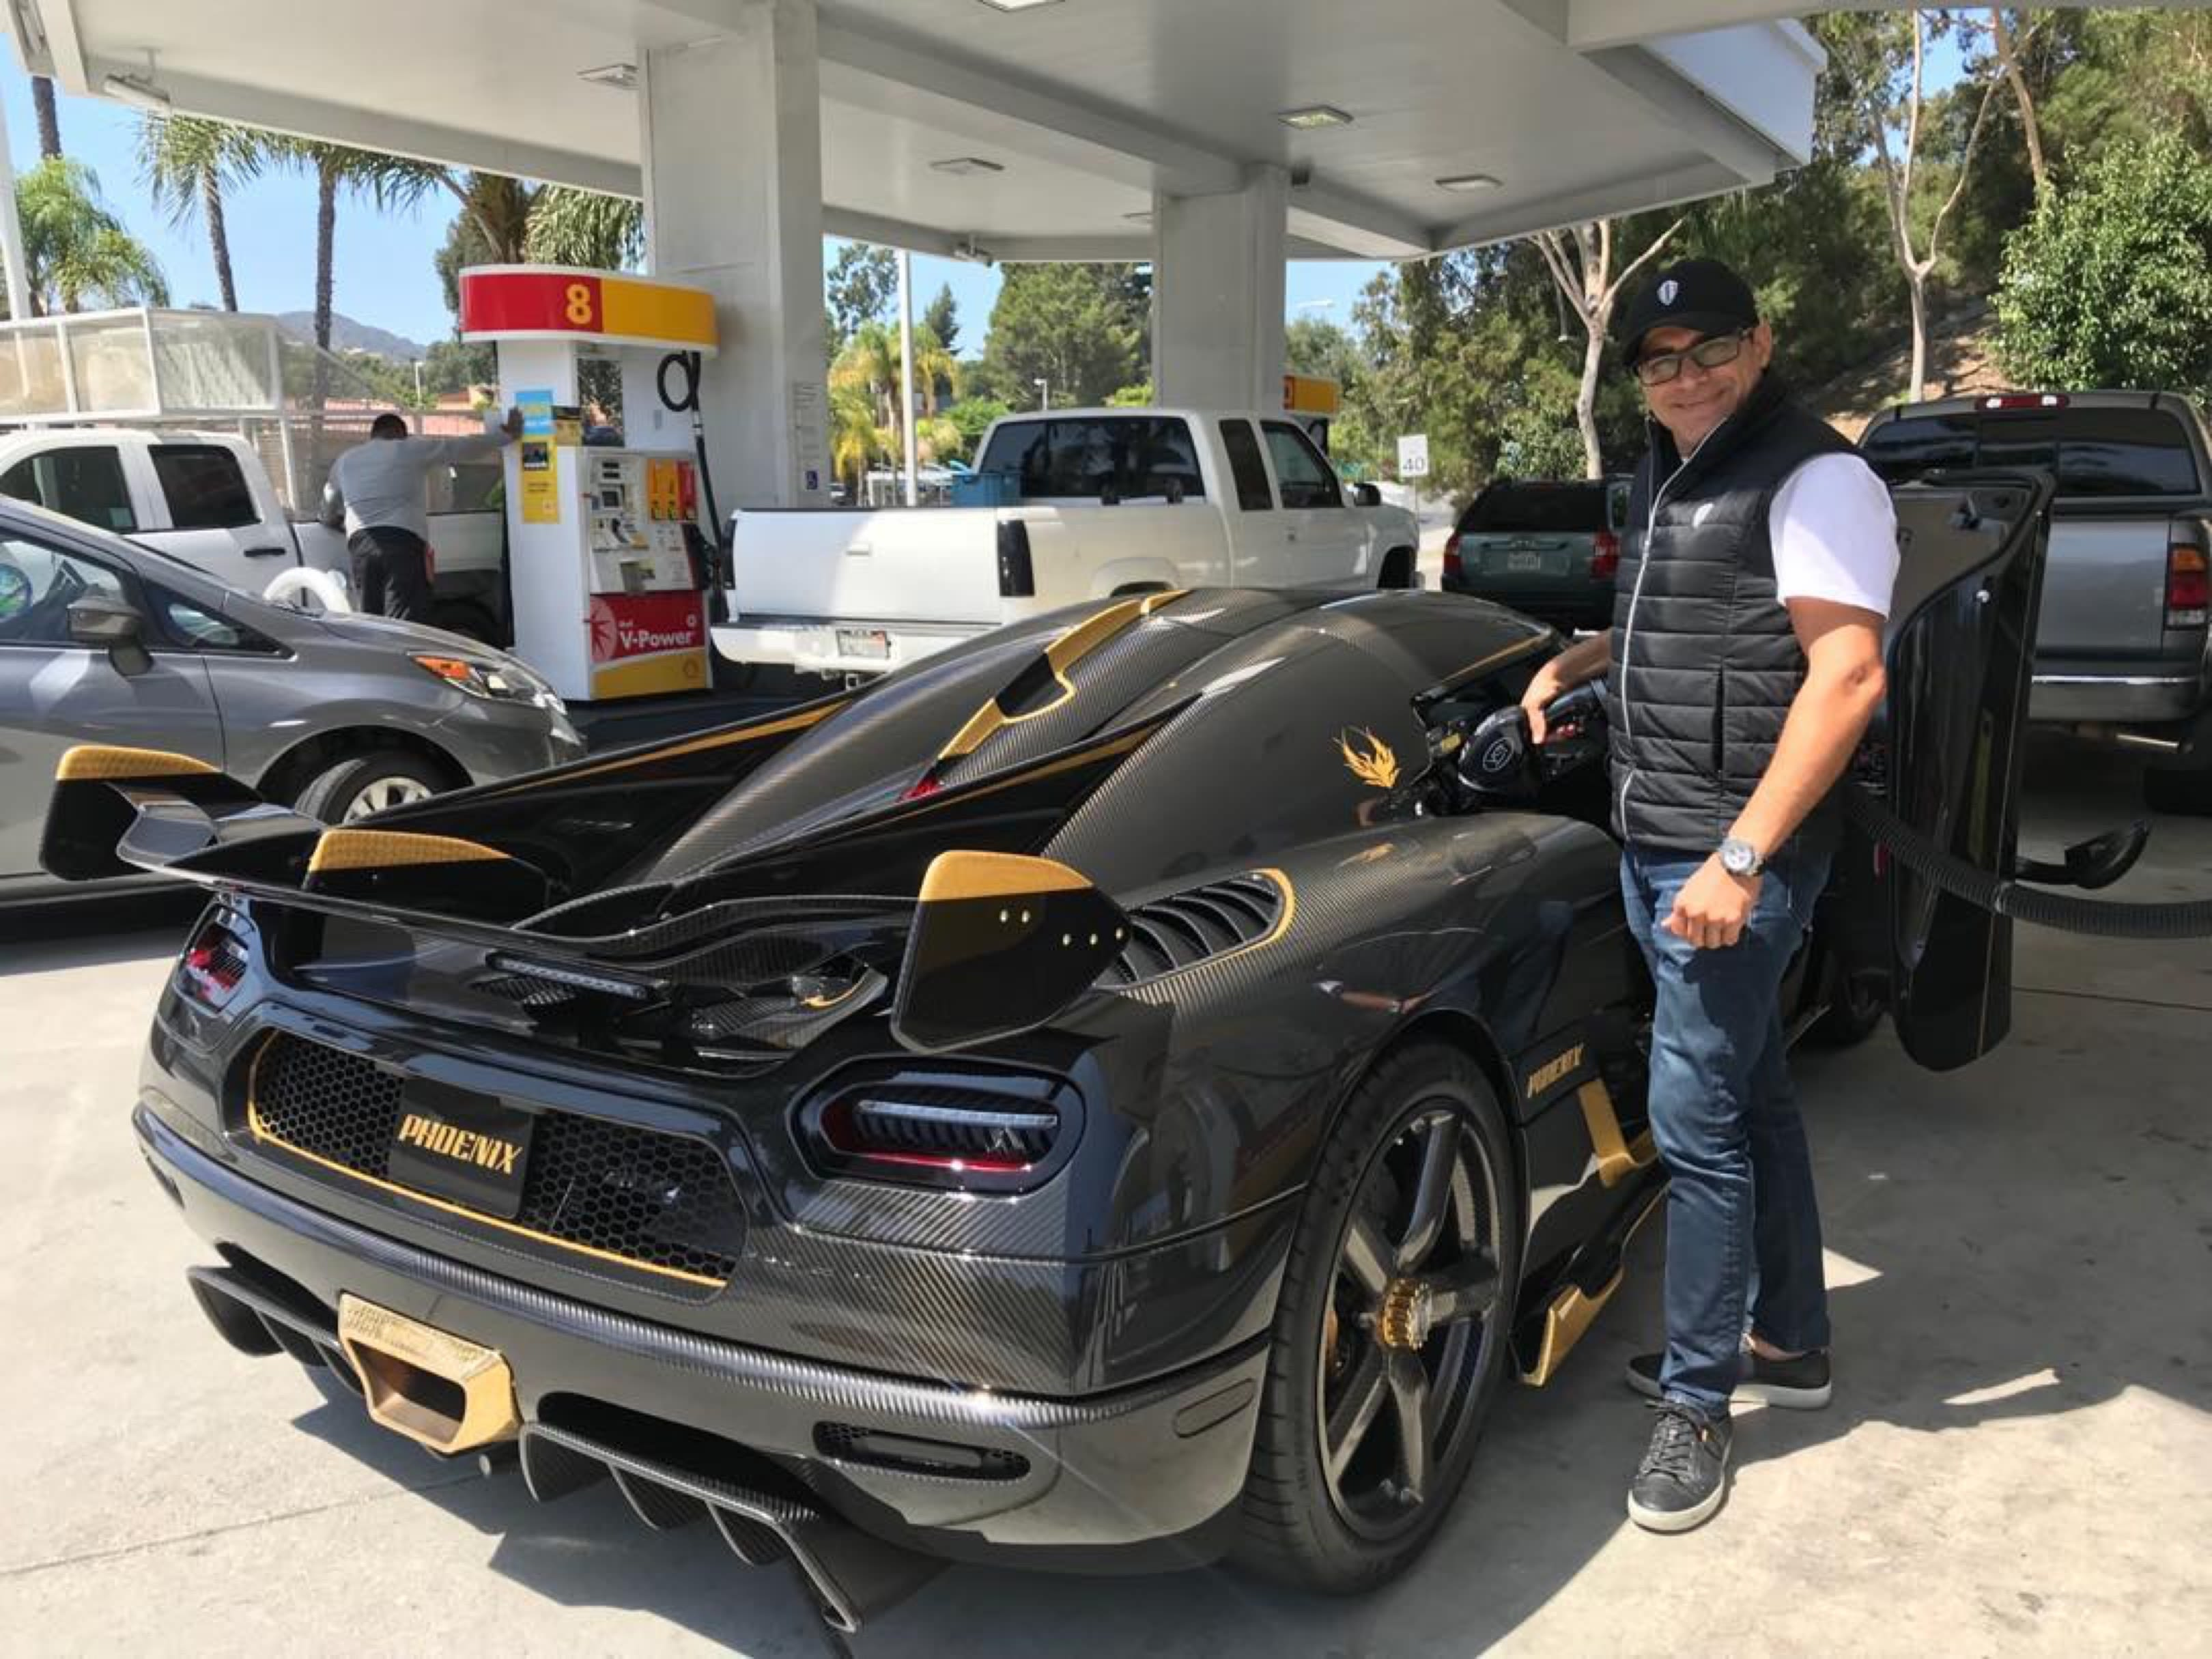 Real estate investor makes $11,875 a day in profit on Koenigsegg supercar